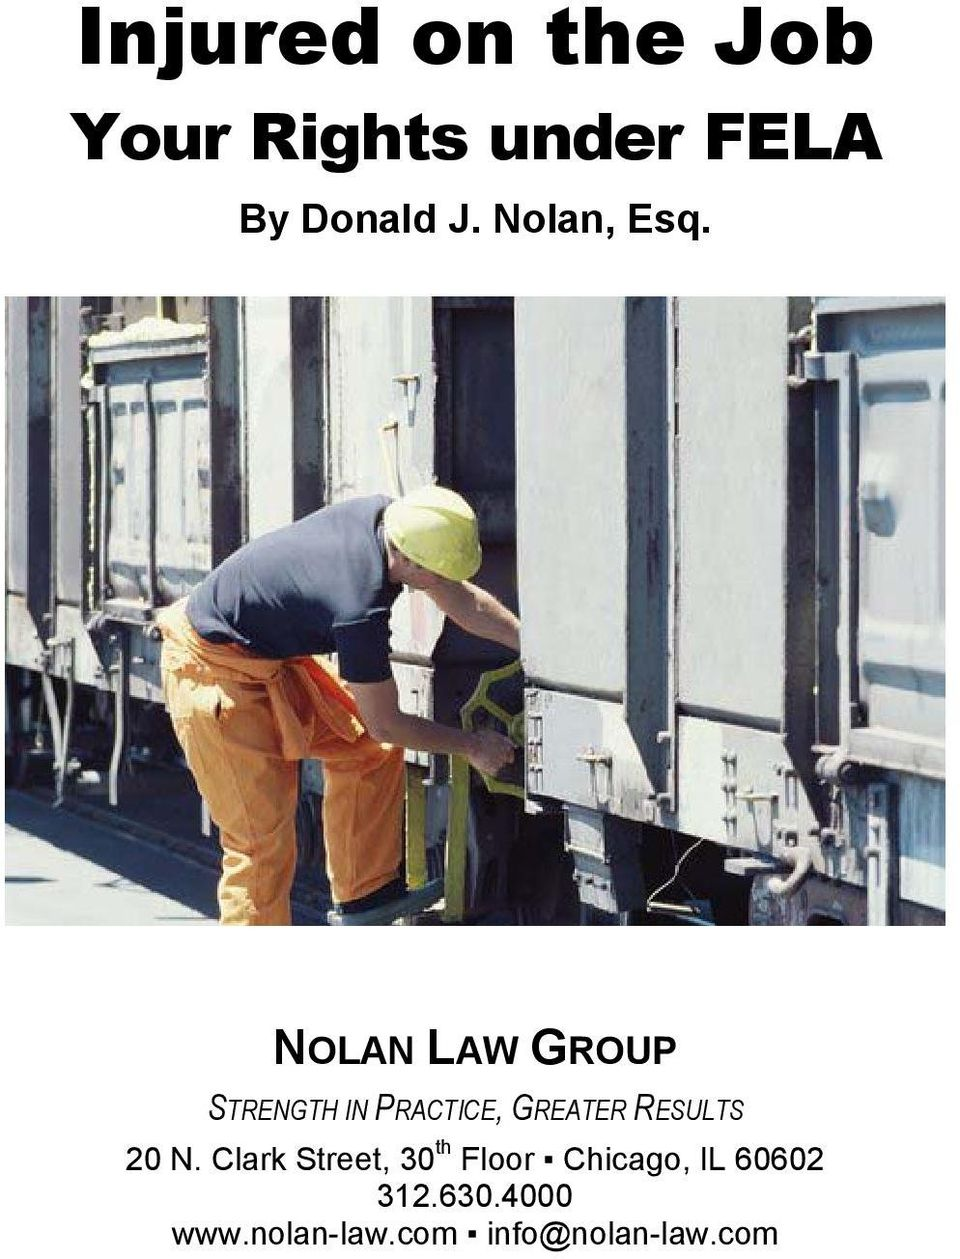 NOLAN LAW GROUP STRENGTH IN PRACTICE, GREATER RESULTS